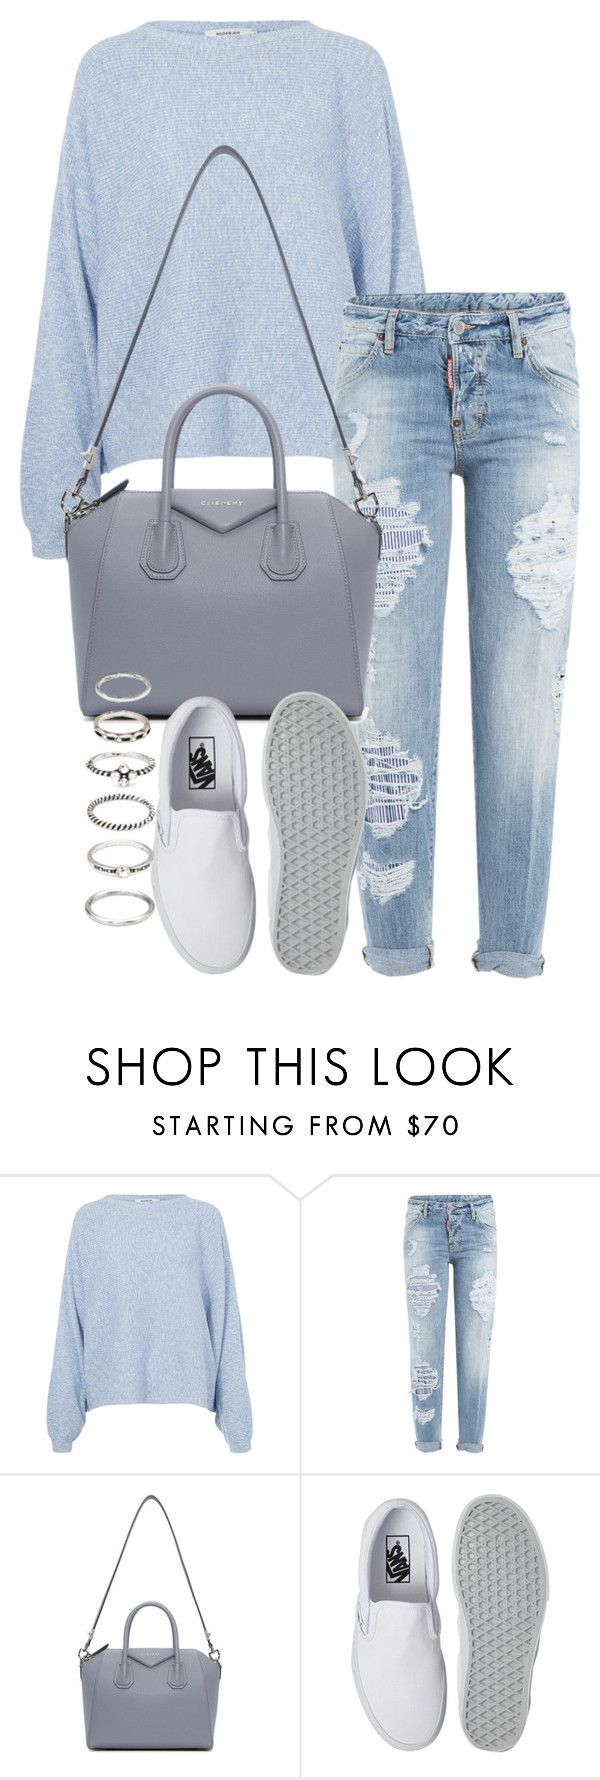 """""""Untitled #1469"""" by tyra482 ❤ liked on Polyvore featuring Rodebjer, Dsquared2, Givenchy, Vans and Forever 21"""